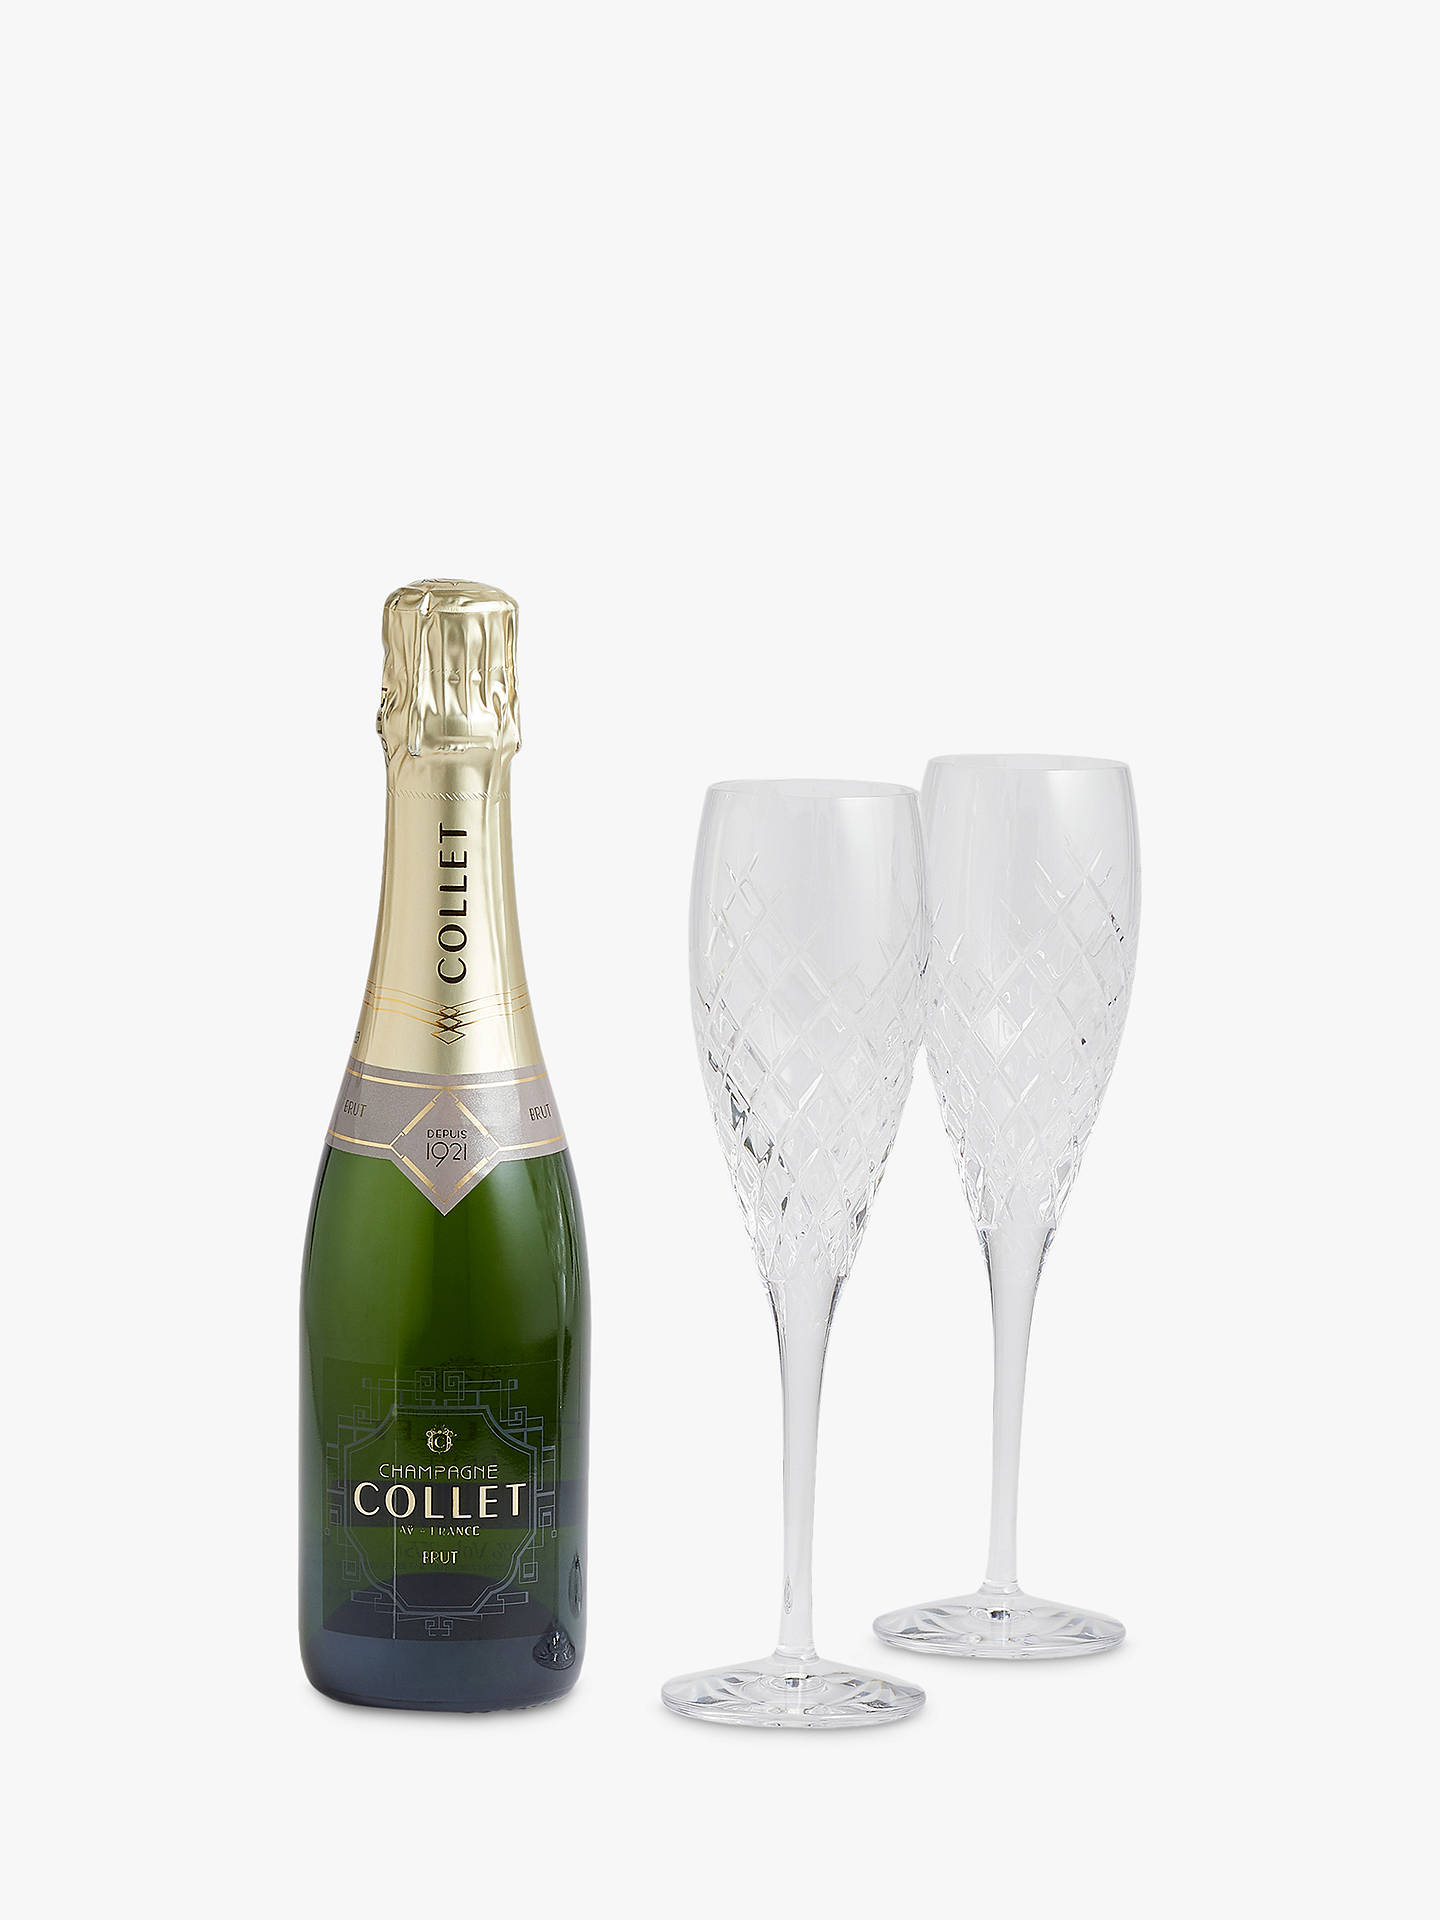 Baby champagne: description, composition, manufacturers and reviews 40